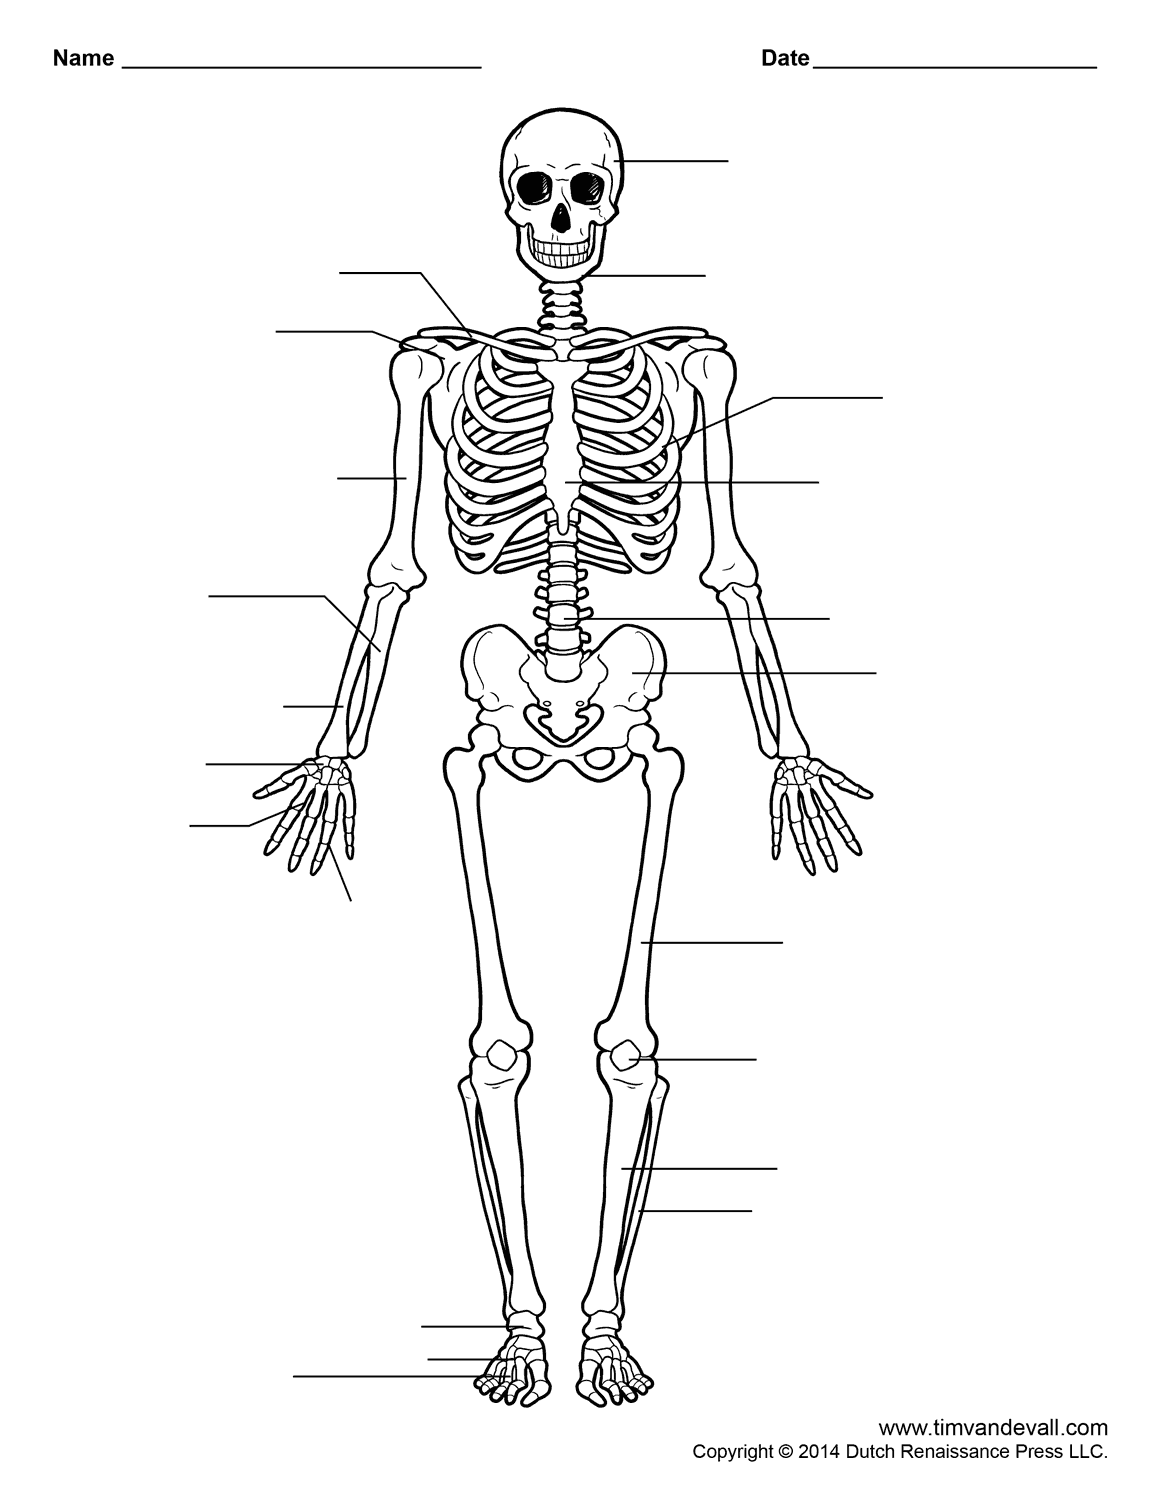 Free Printable Human Skeleton Worksheet for Students and Teachers – Skeletal System Diagram Worksheet